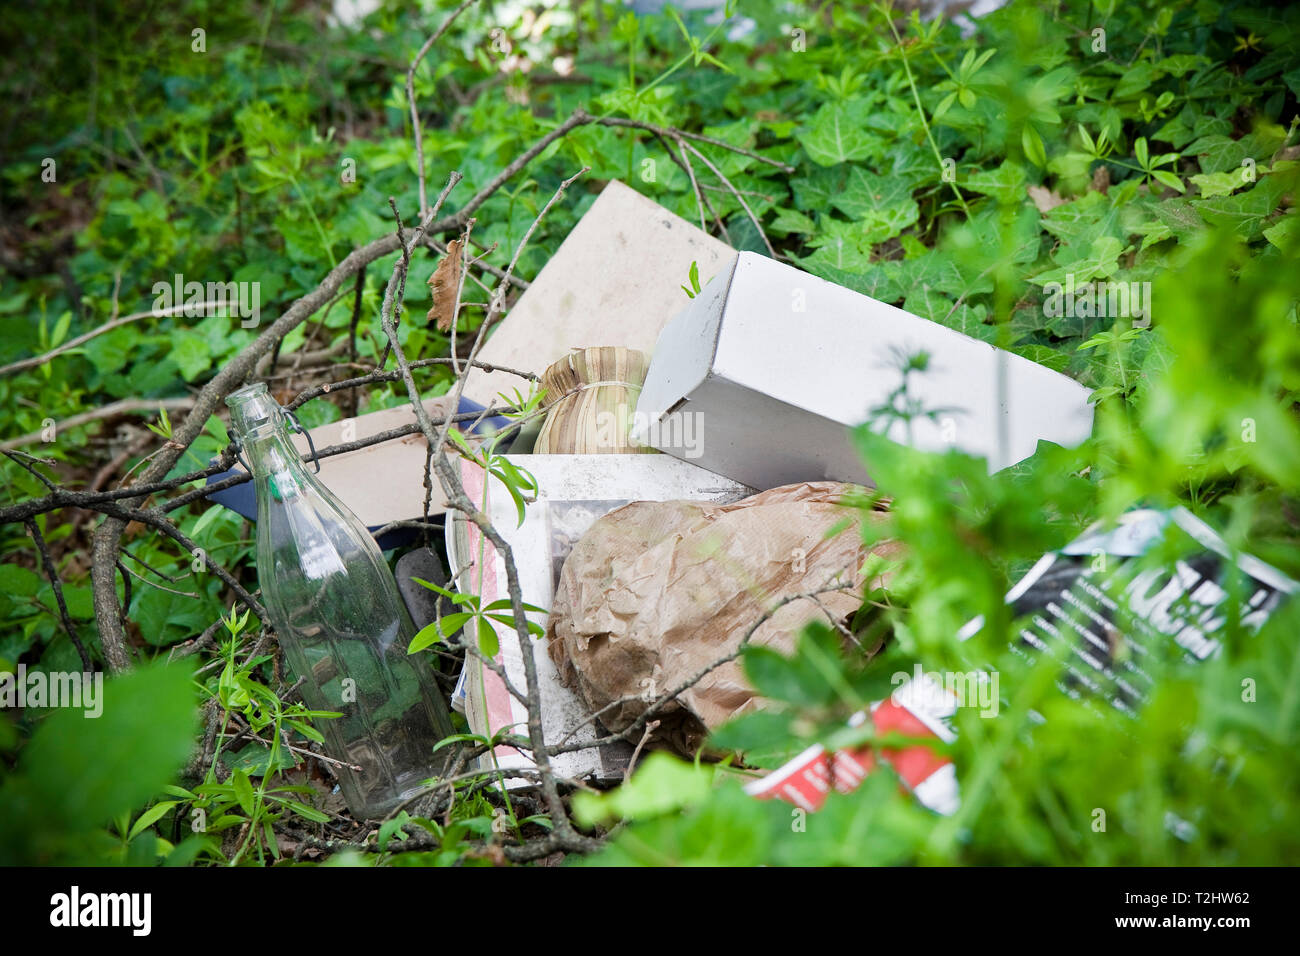 Illegal dumping: education and rudeness concept - Stock Image